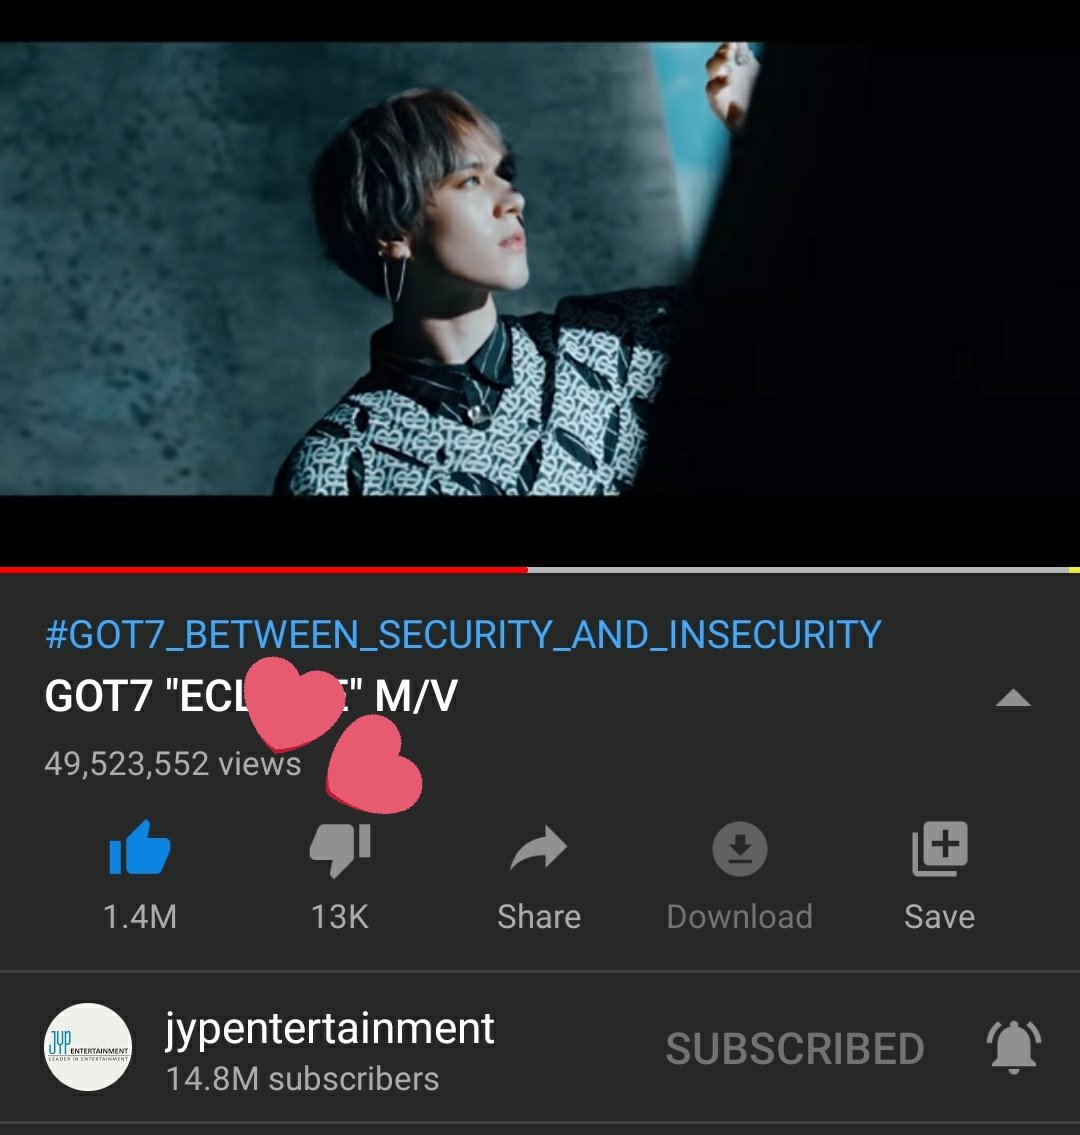 Guys, we're so close to 50M. So please spin harder so that ECLIPSE can reach 50M. #GOT7 #GOT7KEEPSPINNING #GOT7_BETWEEN_SECURITY_AND_INSECURITY #IGOT7 #Aghase #GOT7_KEEPSPINNING #Eclipse  @GOT7Official #갓세븐 ECLIPSE (GOT7) :  https:// youtu.be/6tl-MG38-0E     <br>http://pic.twitter.com/zmNZfpXWKV